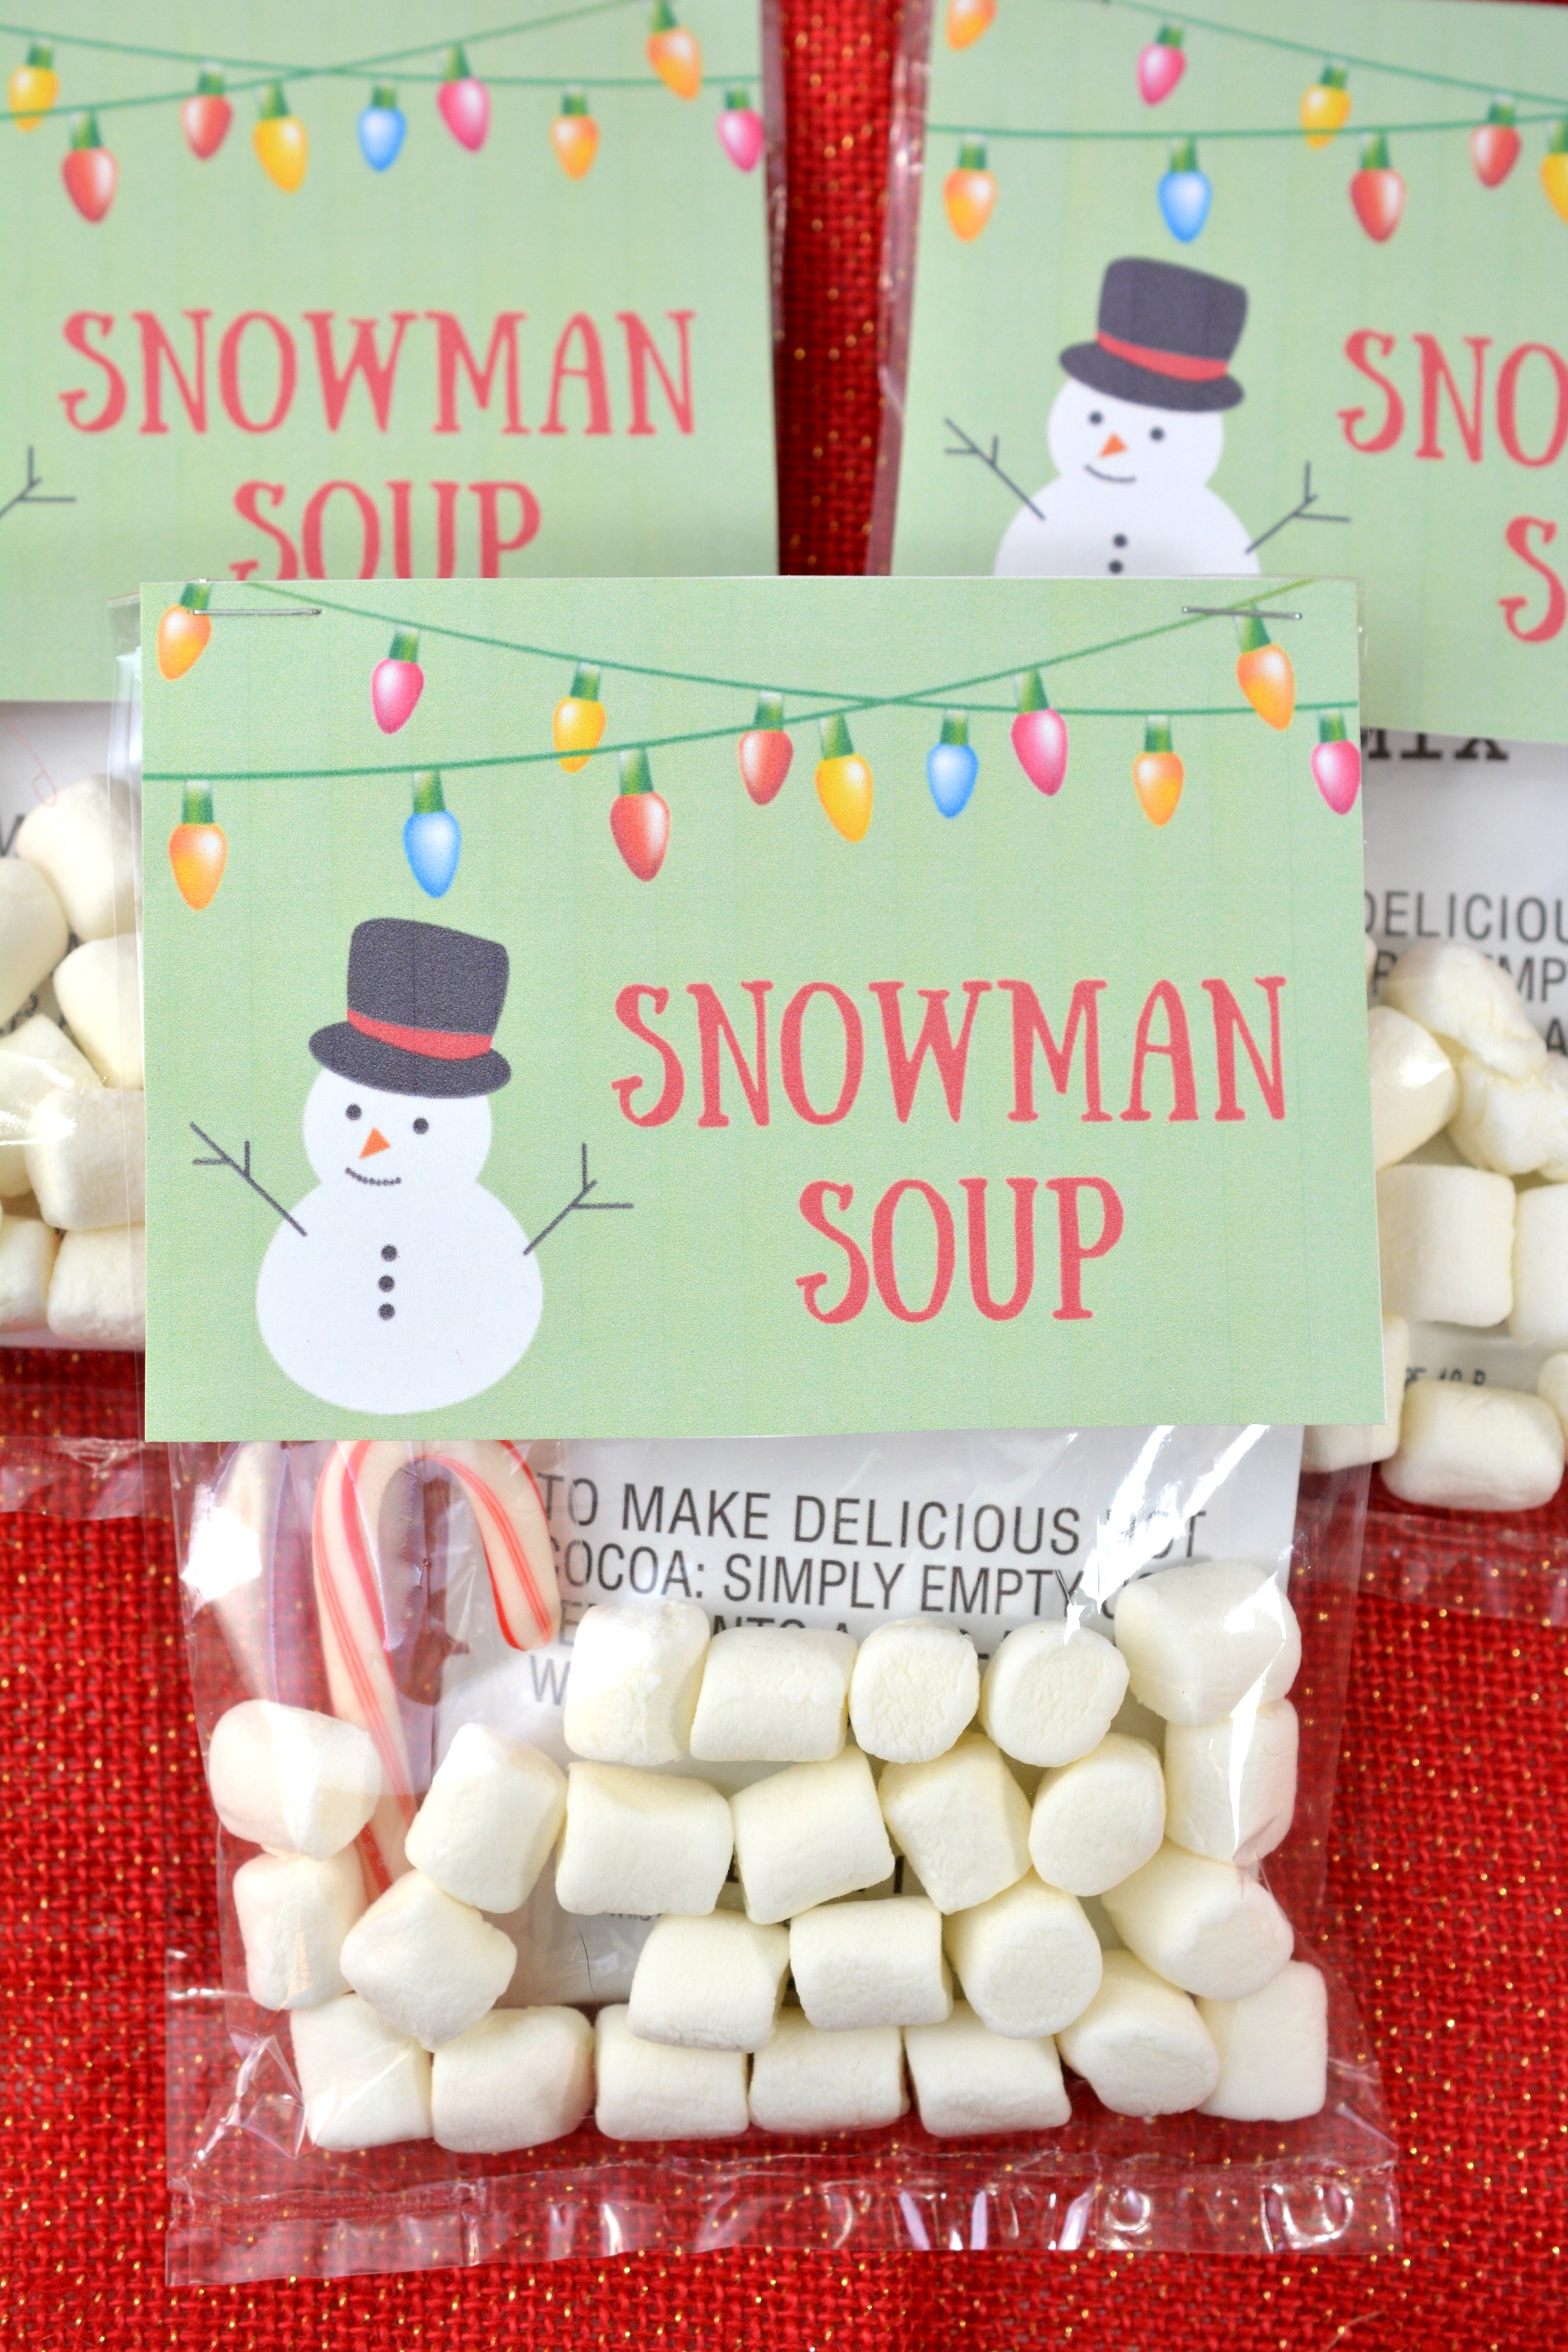 Homemade Holiday Gift Idea: Snowman Soup With Free Printable - About - Snowman Soup Free Printable